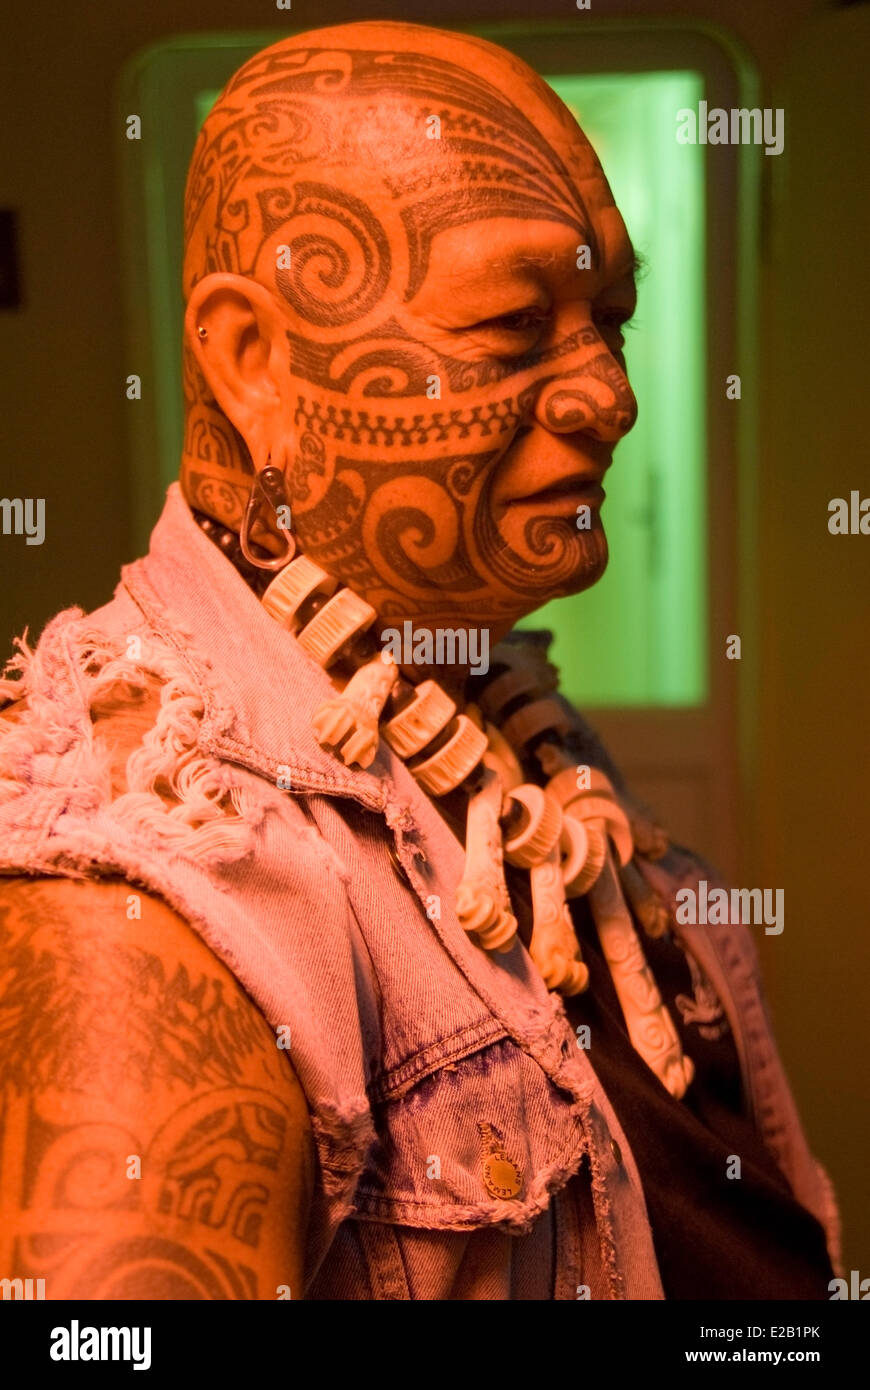 France, French Polynesia, Marquesas islands, cruise aboard the cargo ship Aranui 3, a man with tattooed faces, Jean - Stock Image